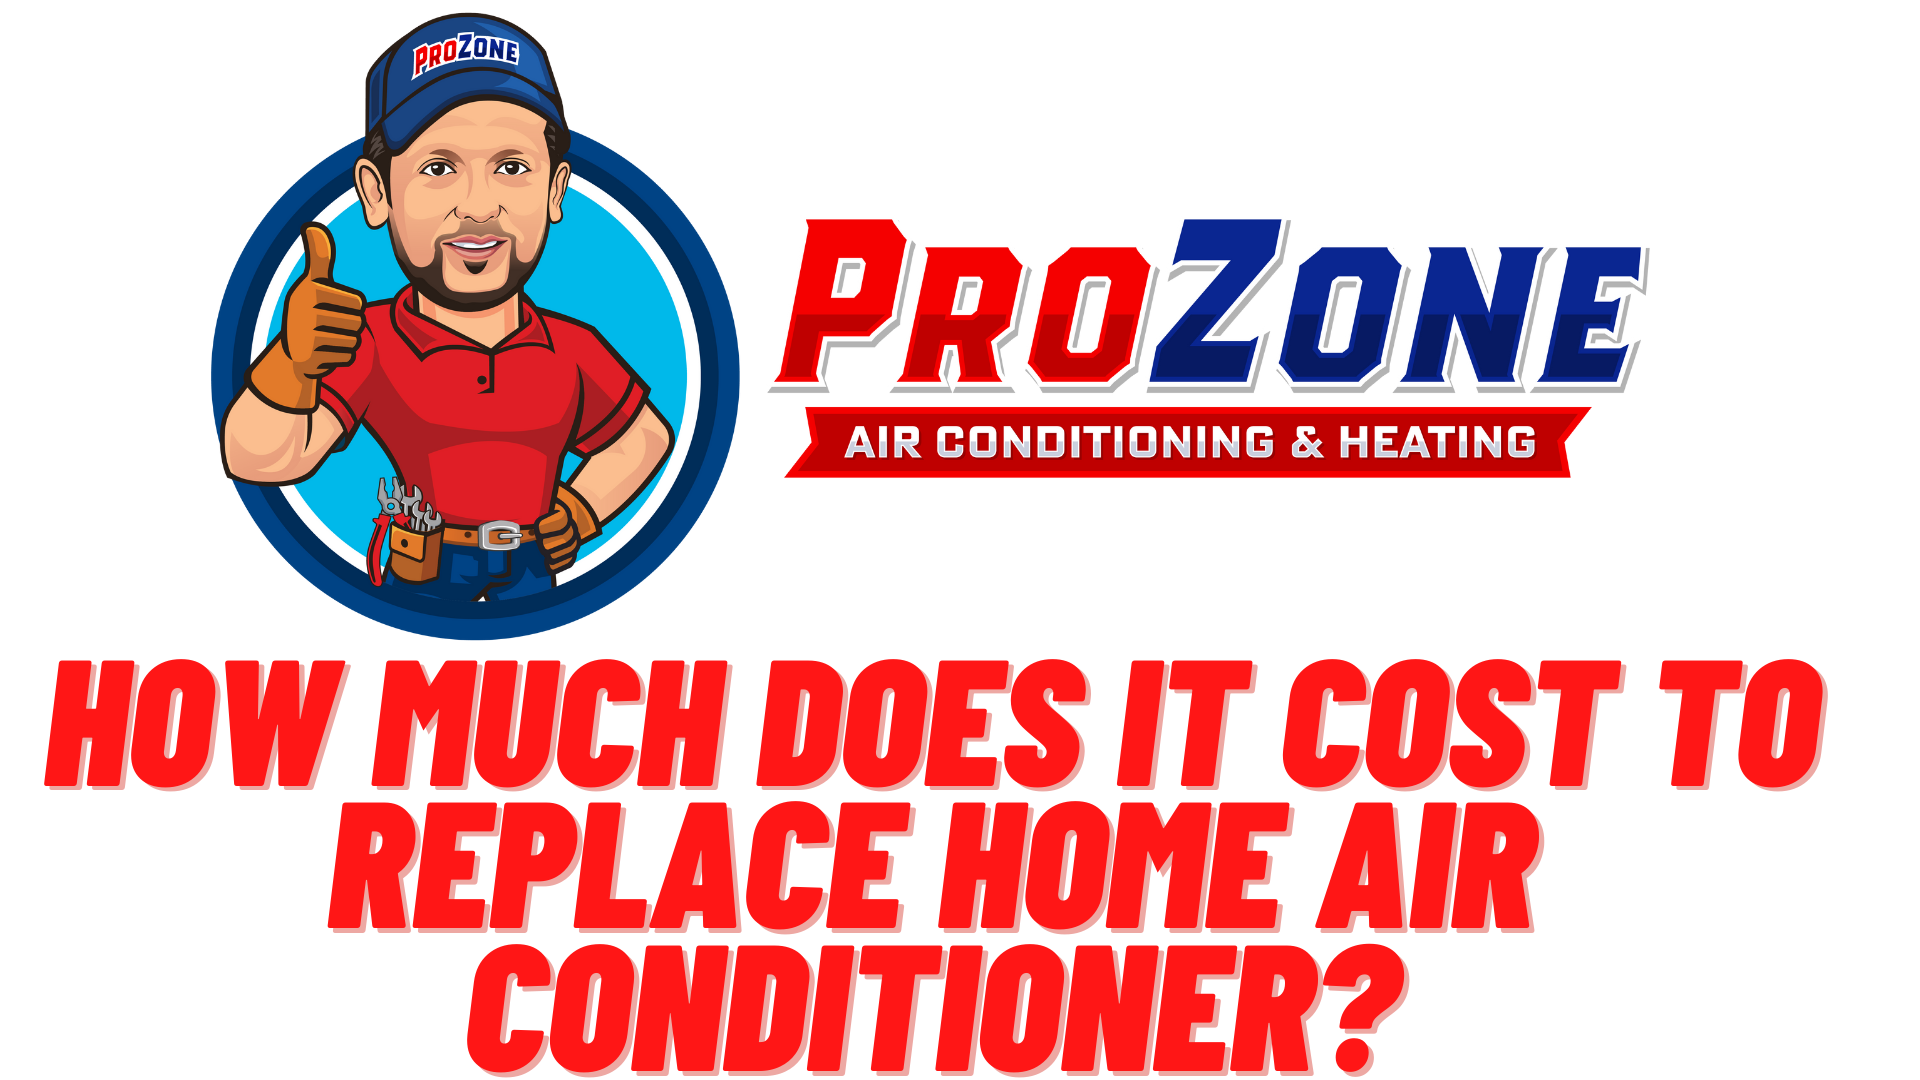 How Much Does it Cost to Replace Home Air Conditioner?